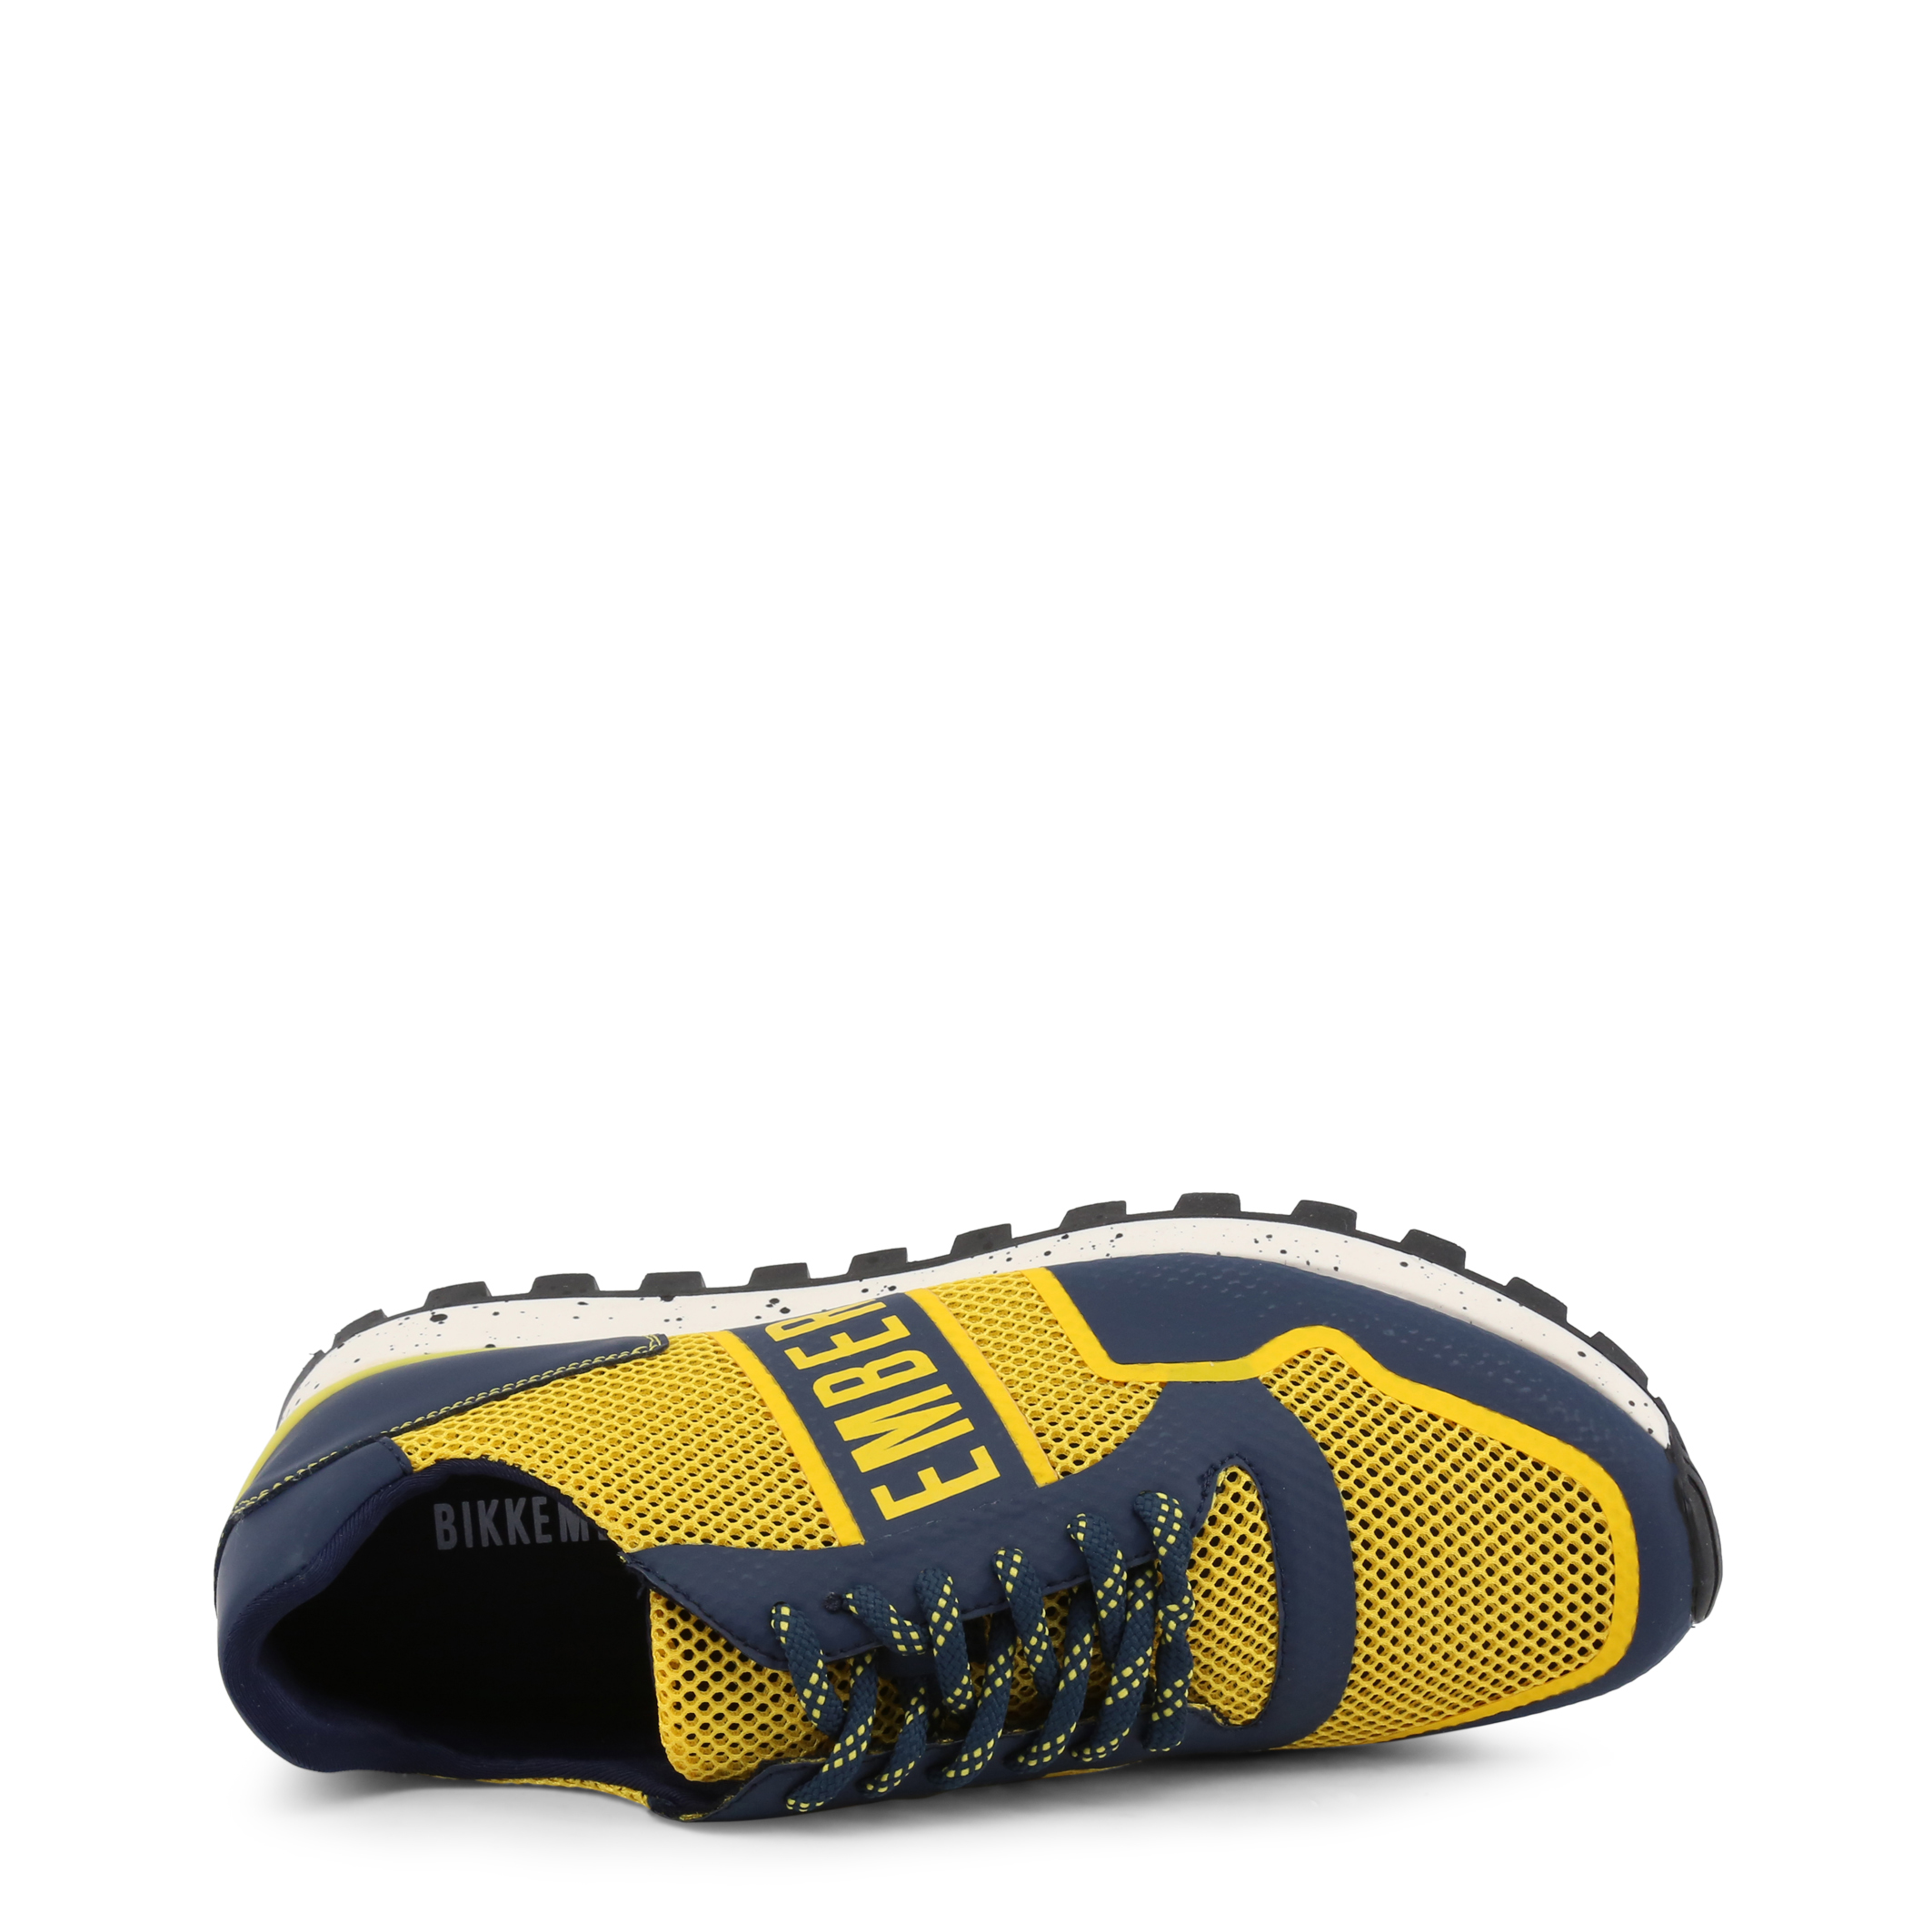 Baskets / Sport  Bikkembergs FEND-ER_2084 yellow